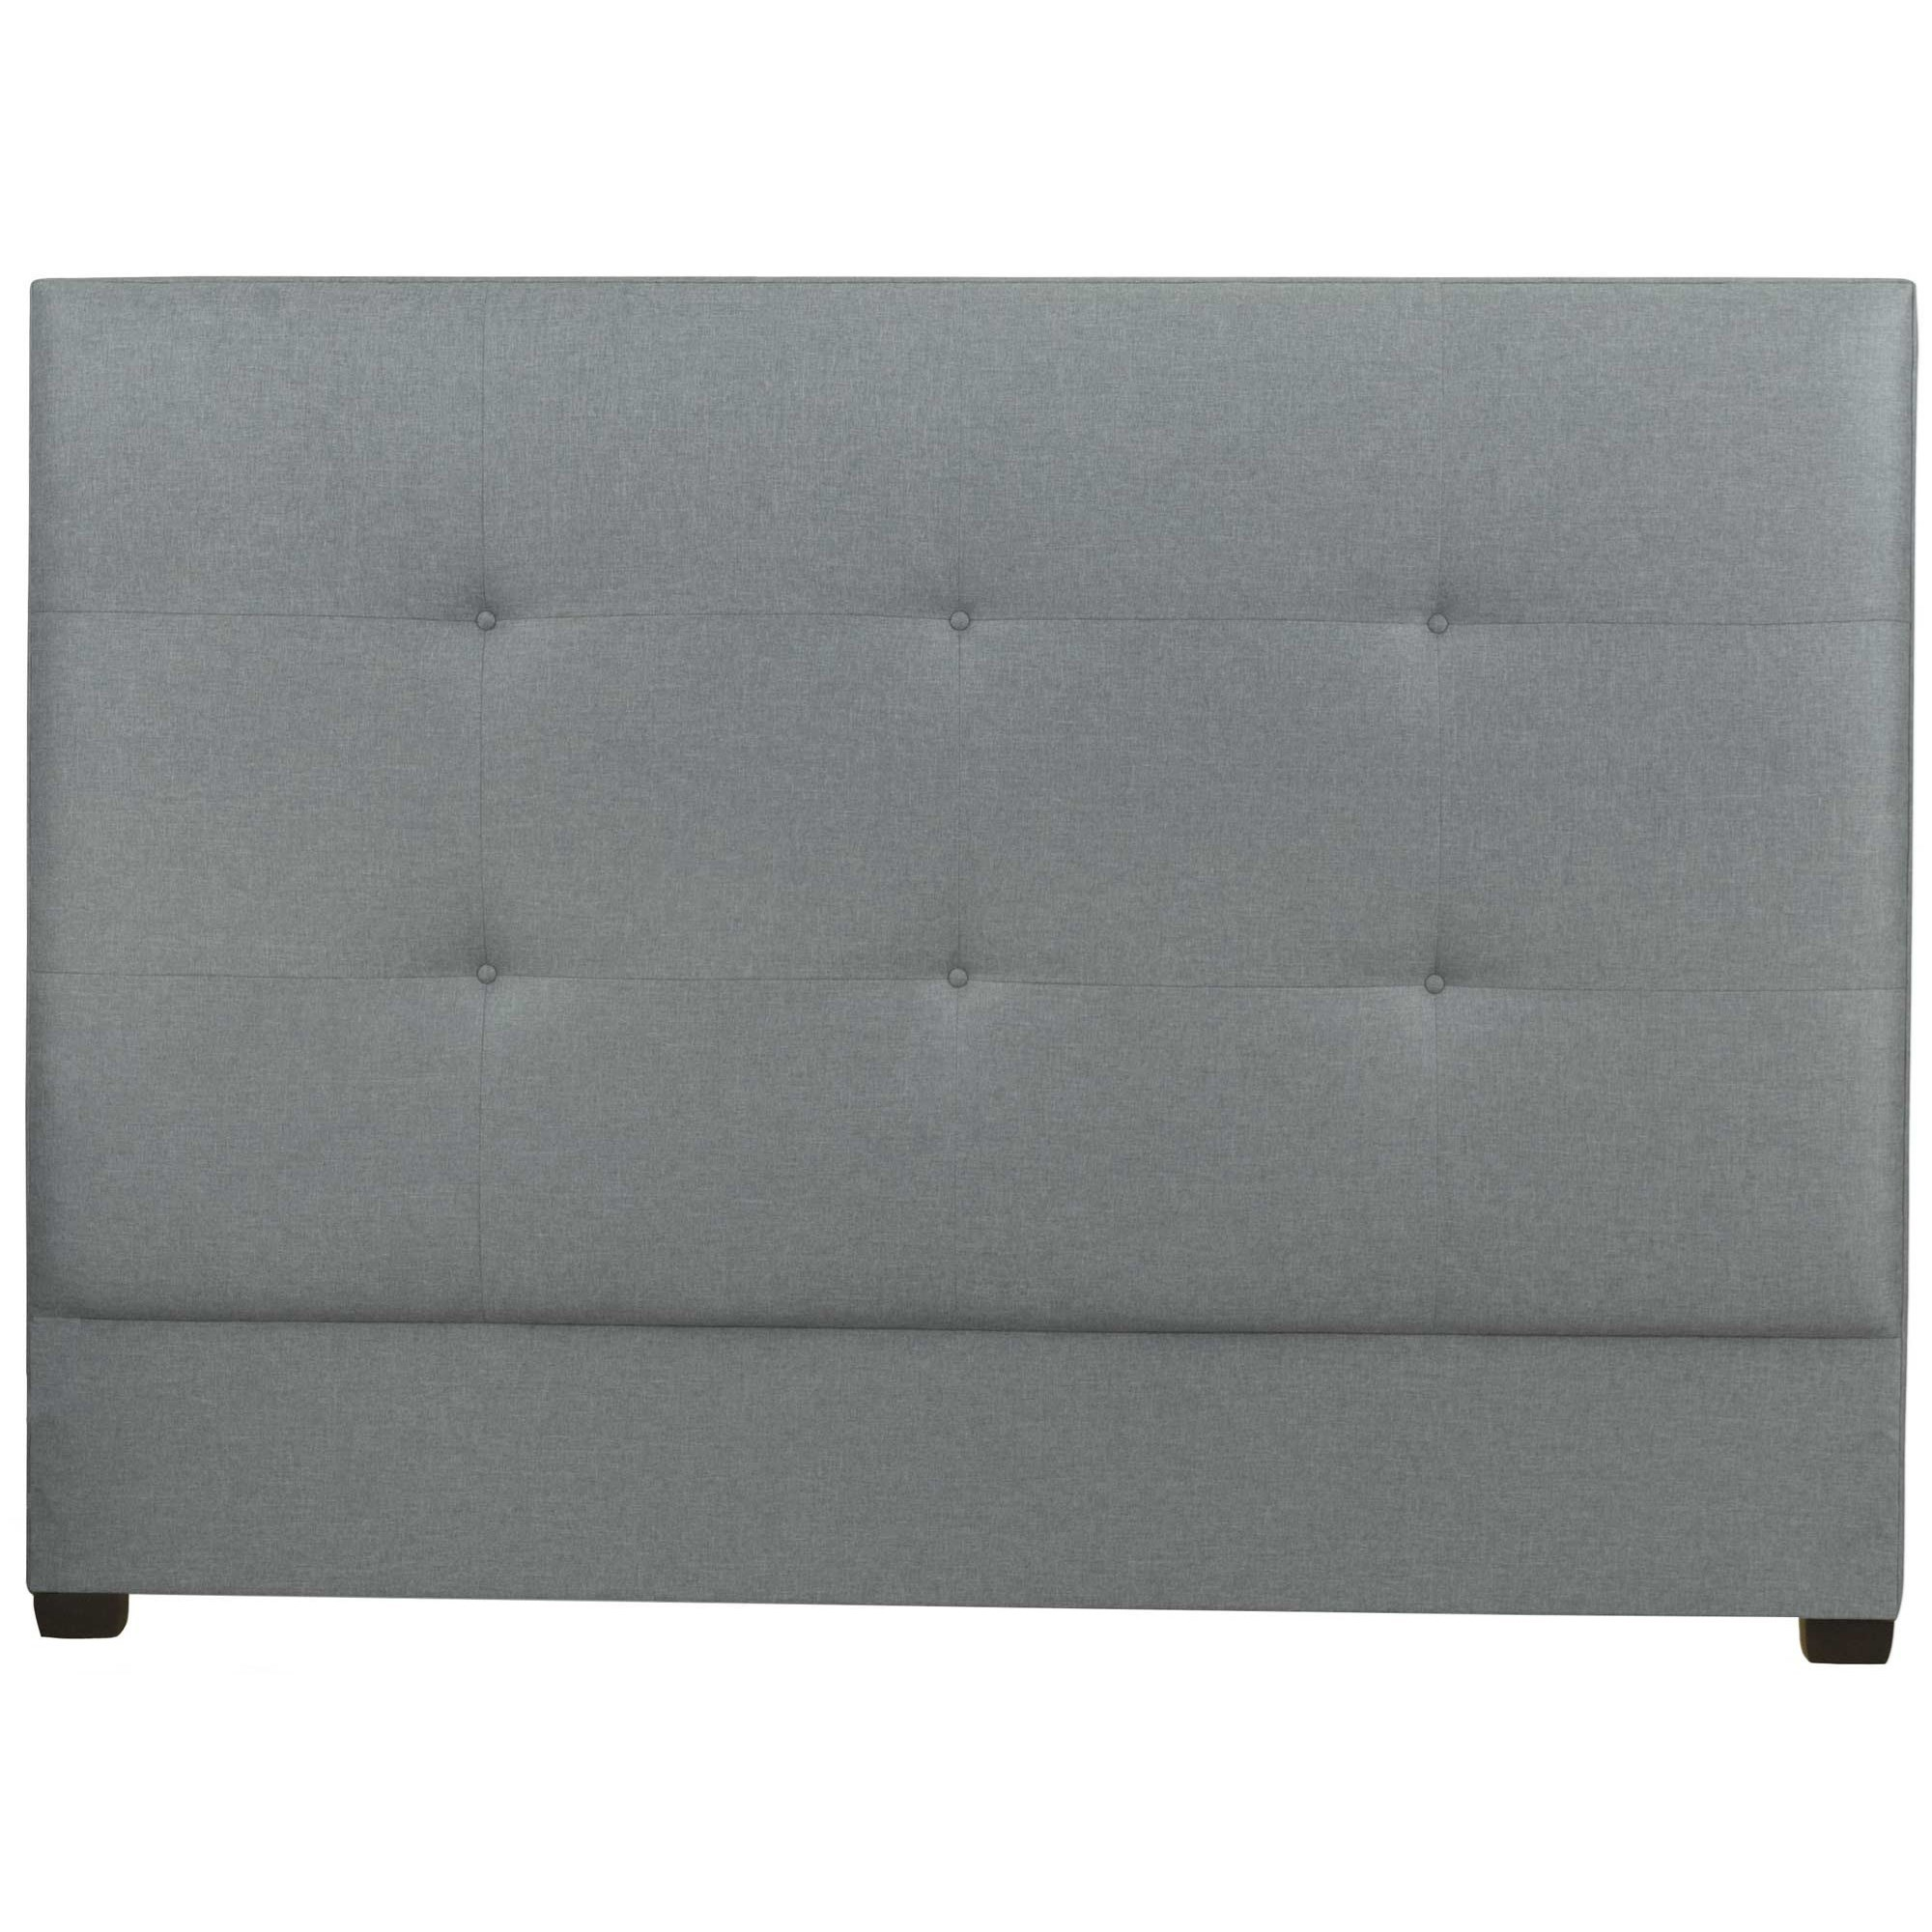 Interiors - Beds Queen Derrick Headboard by Bernhardt at Baer's Furniture